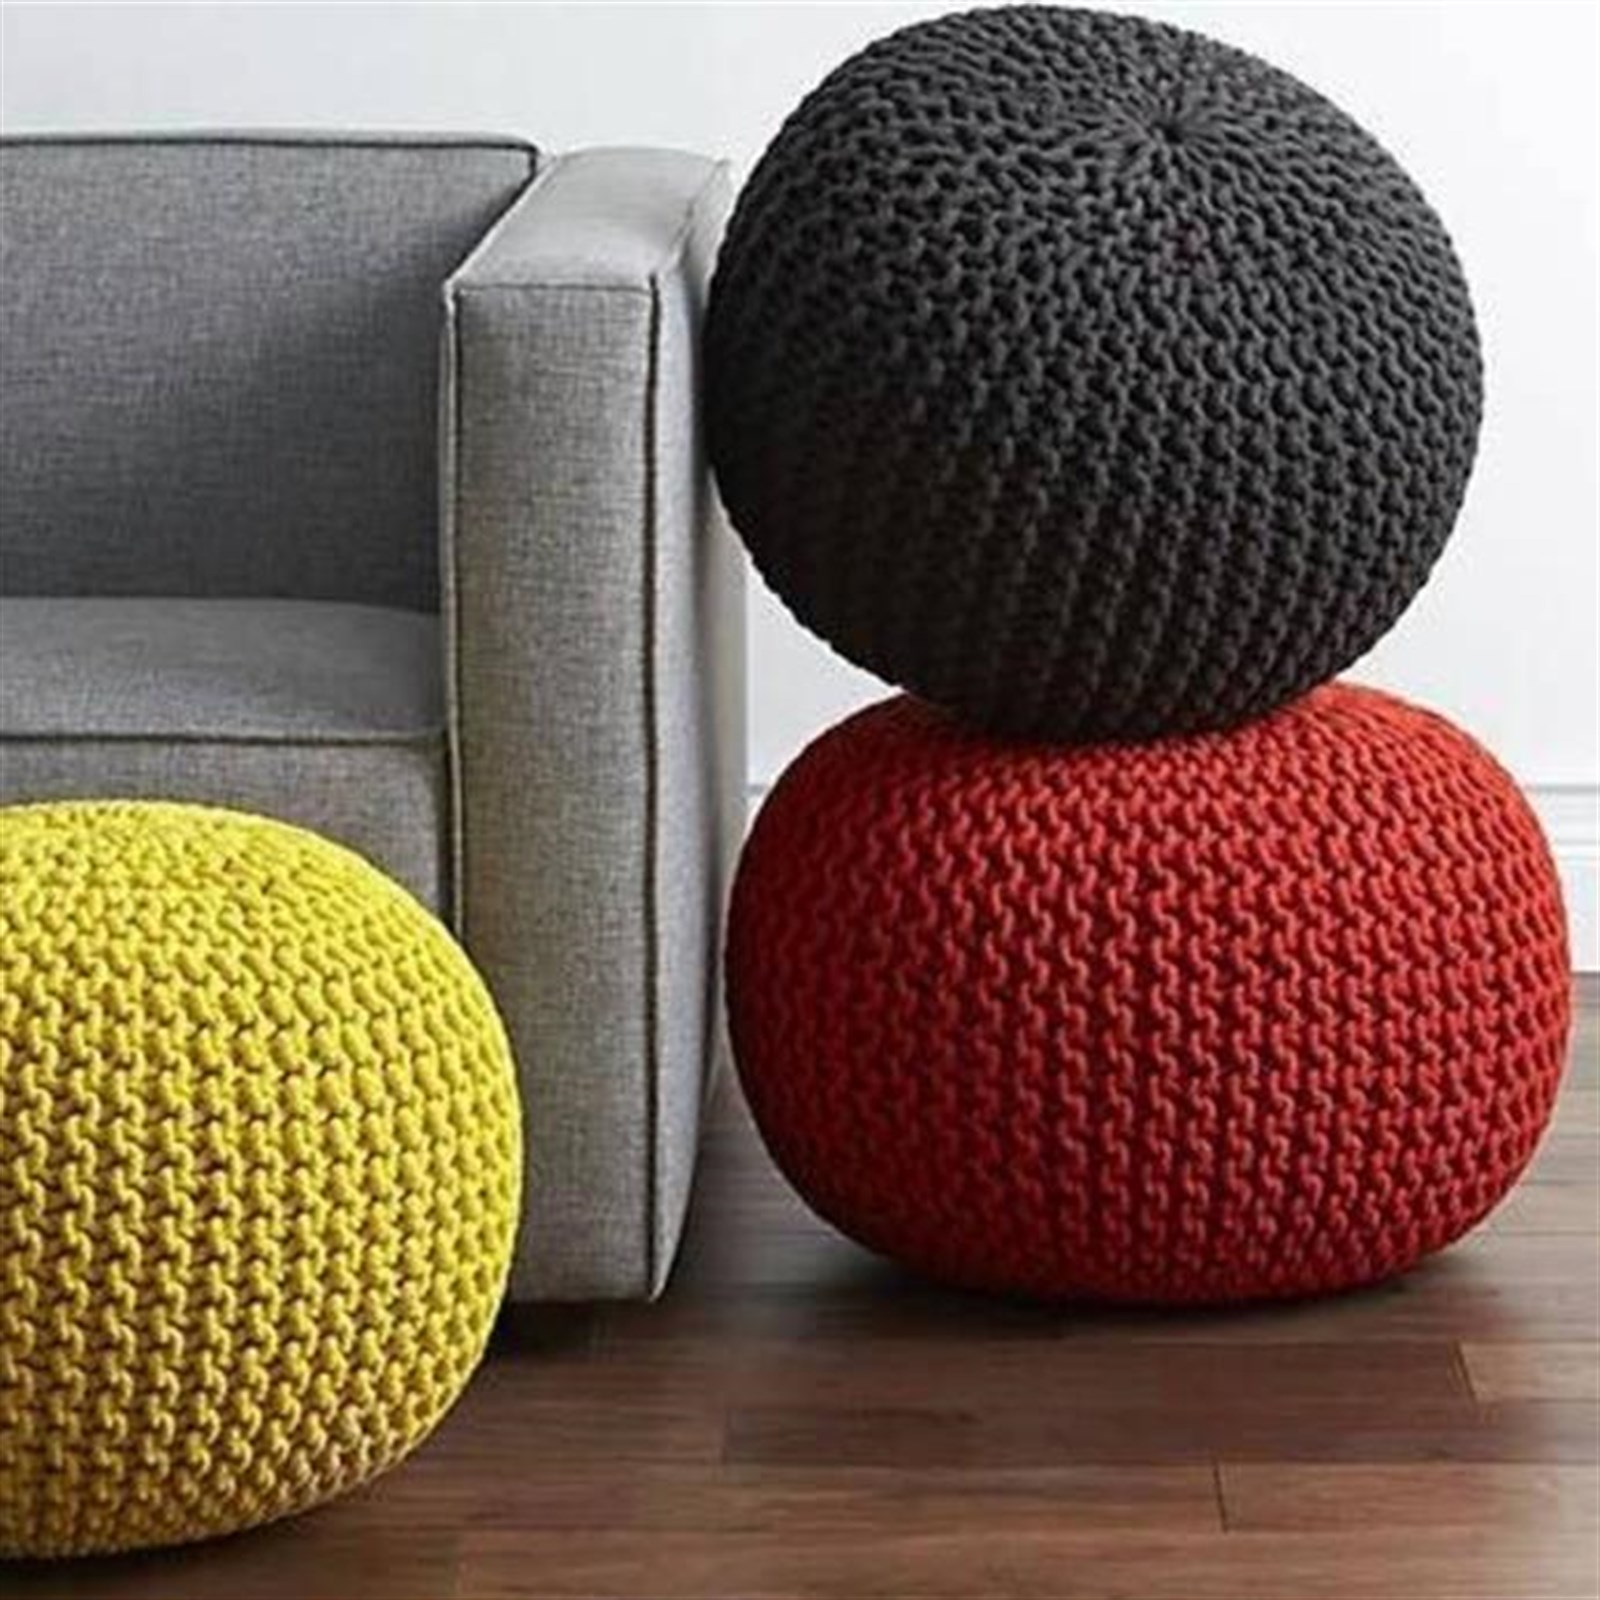 Handmade Gumdrop Knitted Pouf Only $35.99 w/ Free Shipping